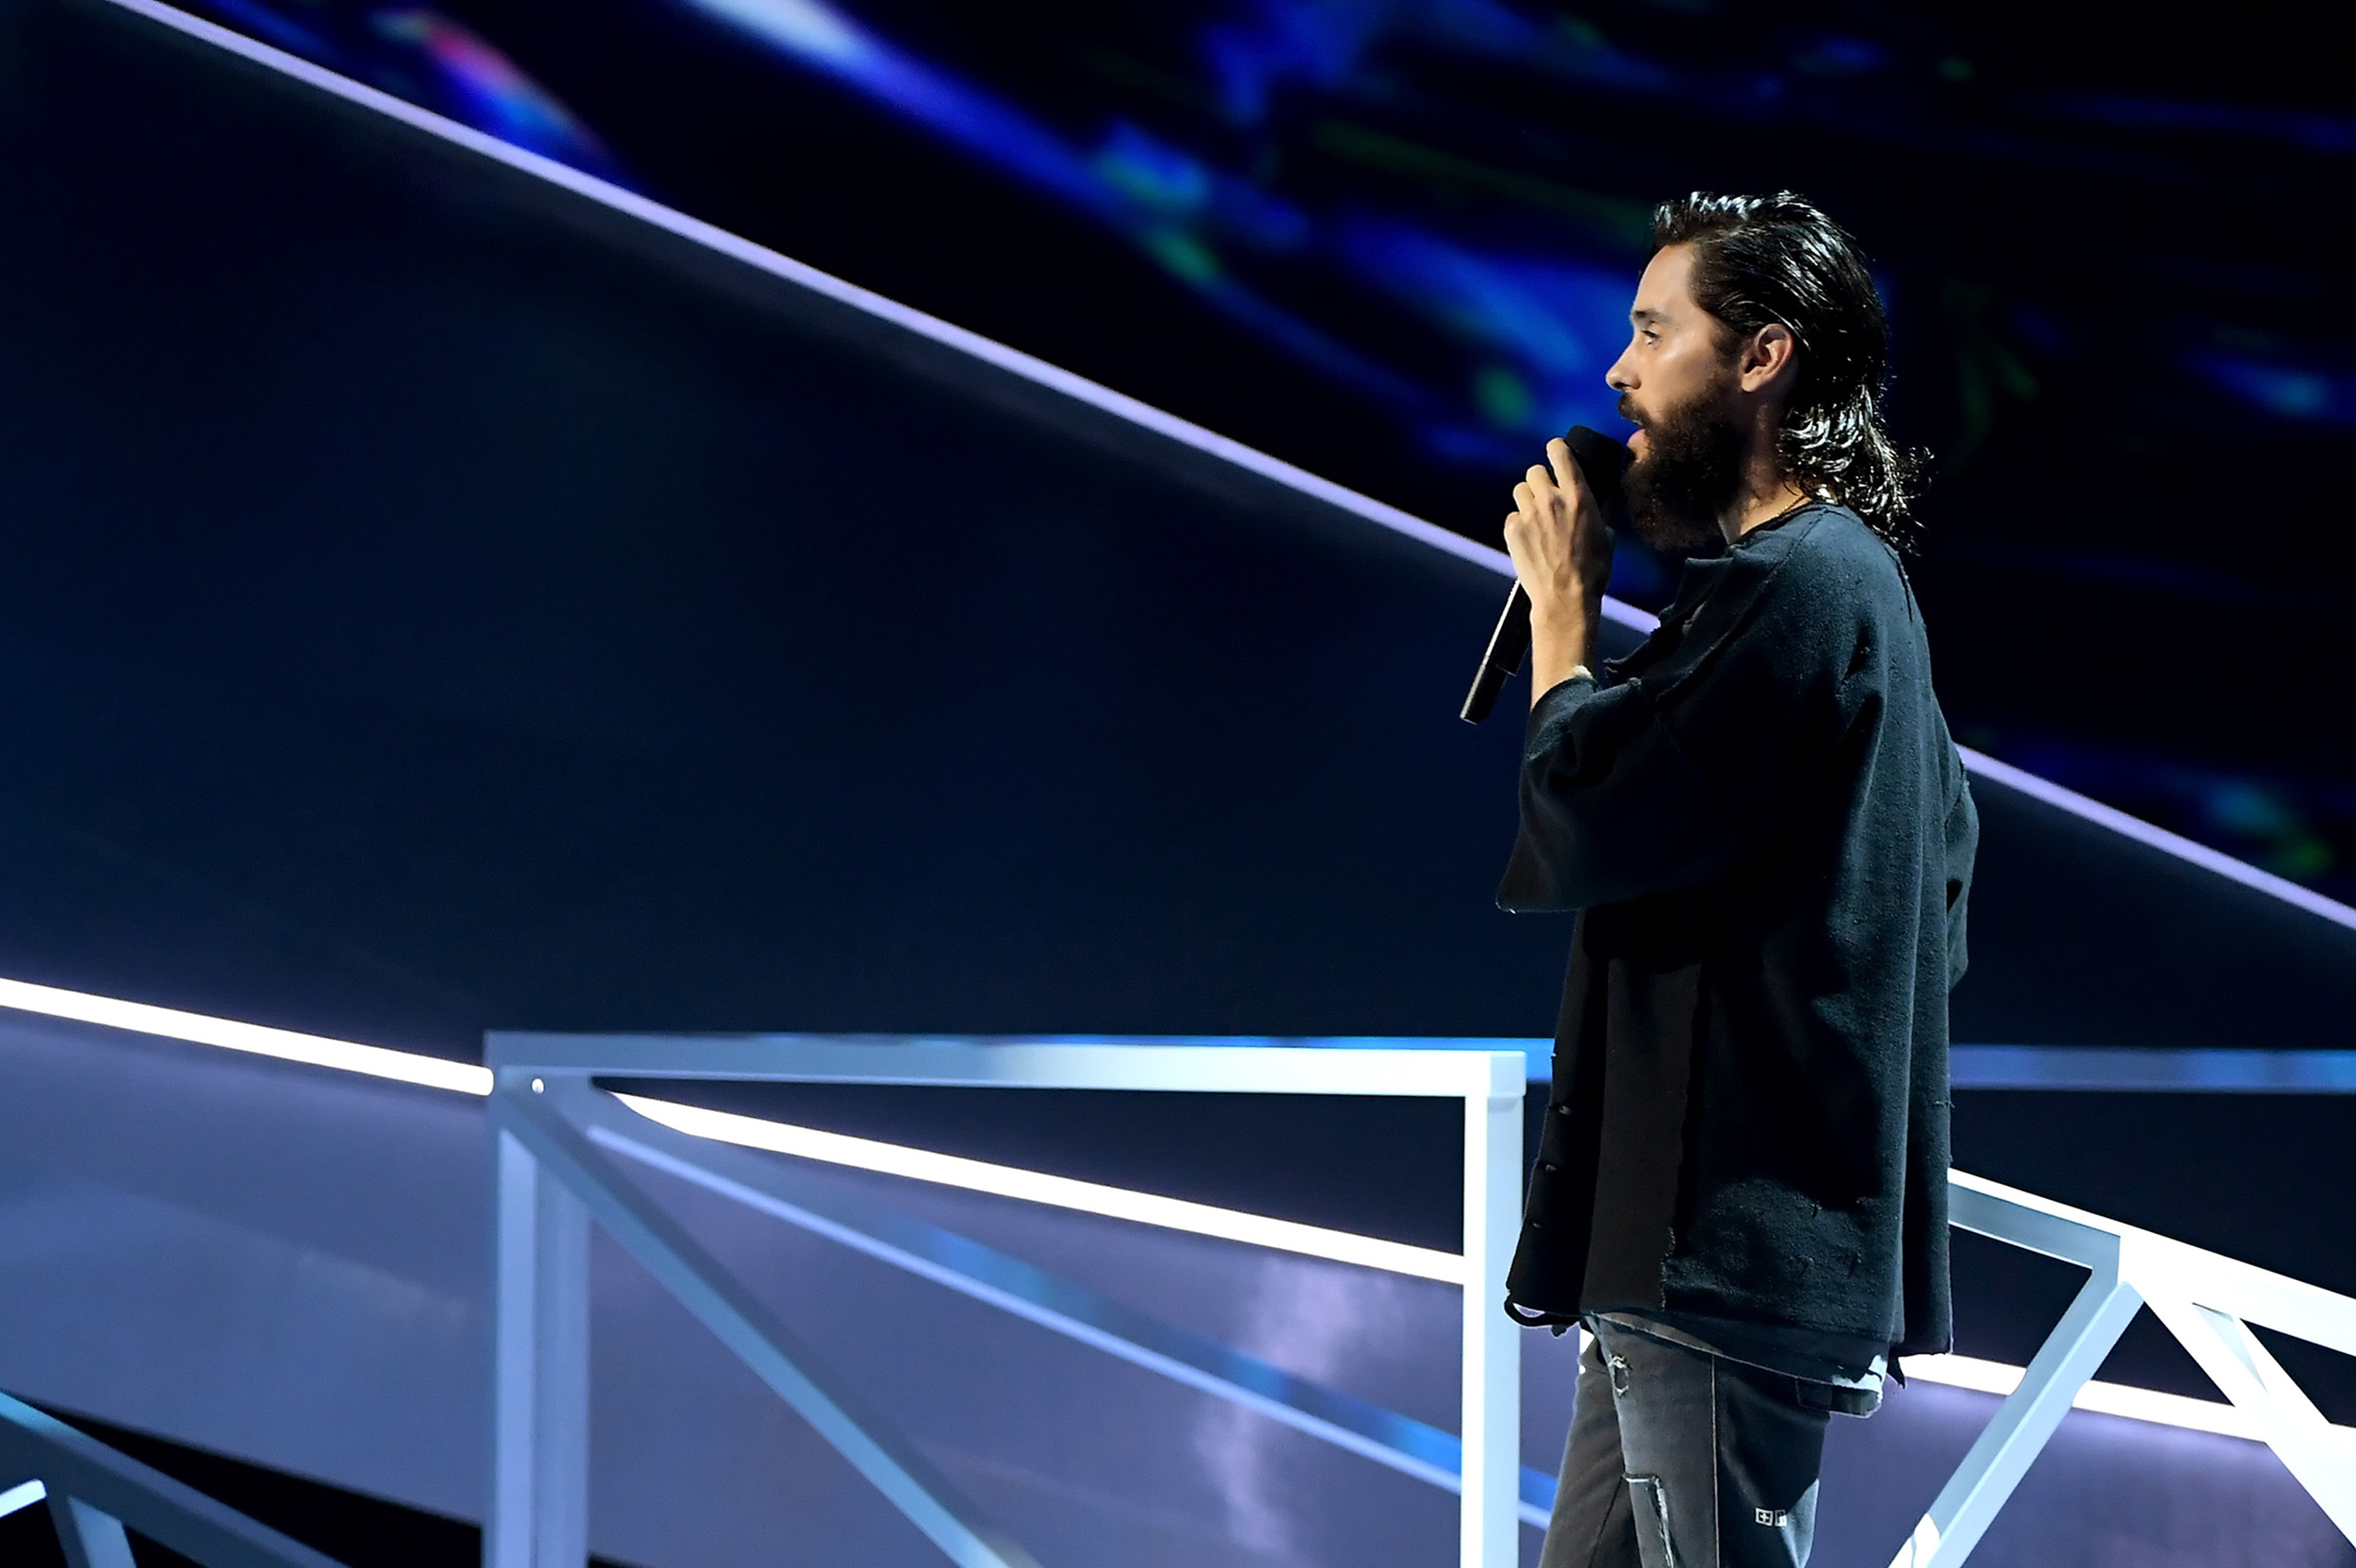 Jared Leto speaks onstage during the 2017 MTV Video Music Awards at The Forum on August 27, 2017 in Inglewood, California.